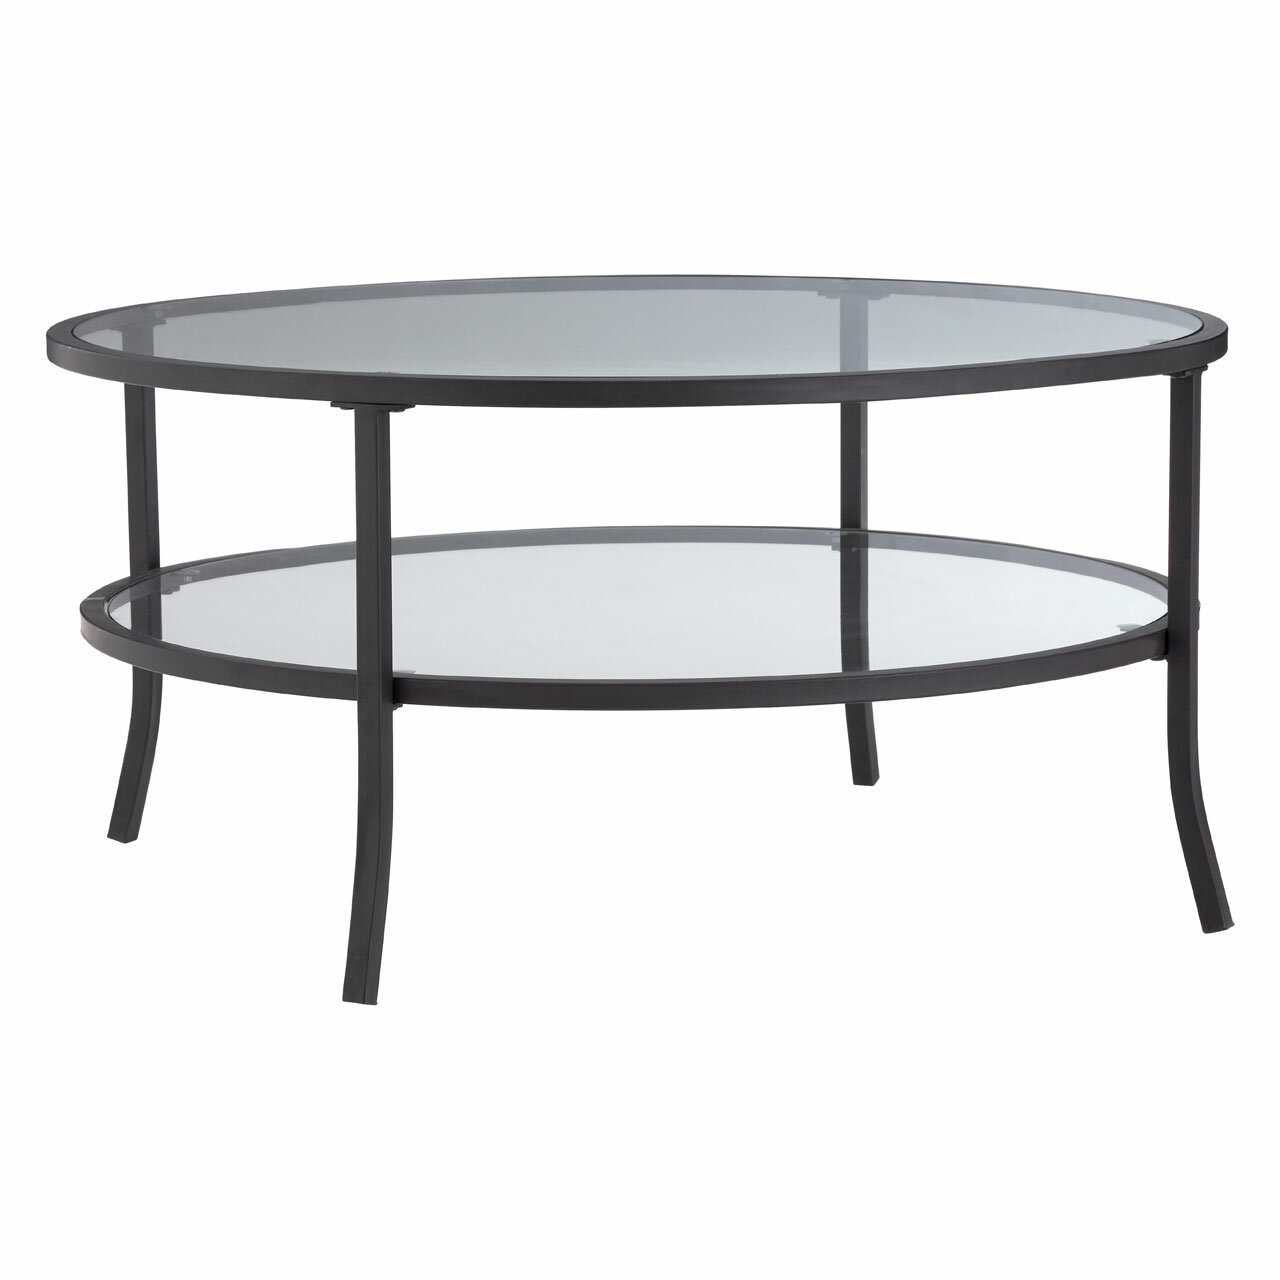 Laurel foundry jackson round coffee table with storage reviews wayfair co uk